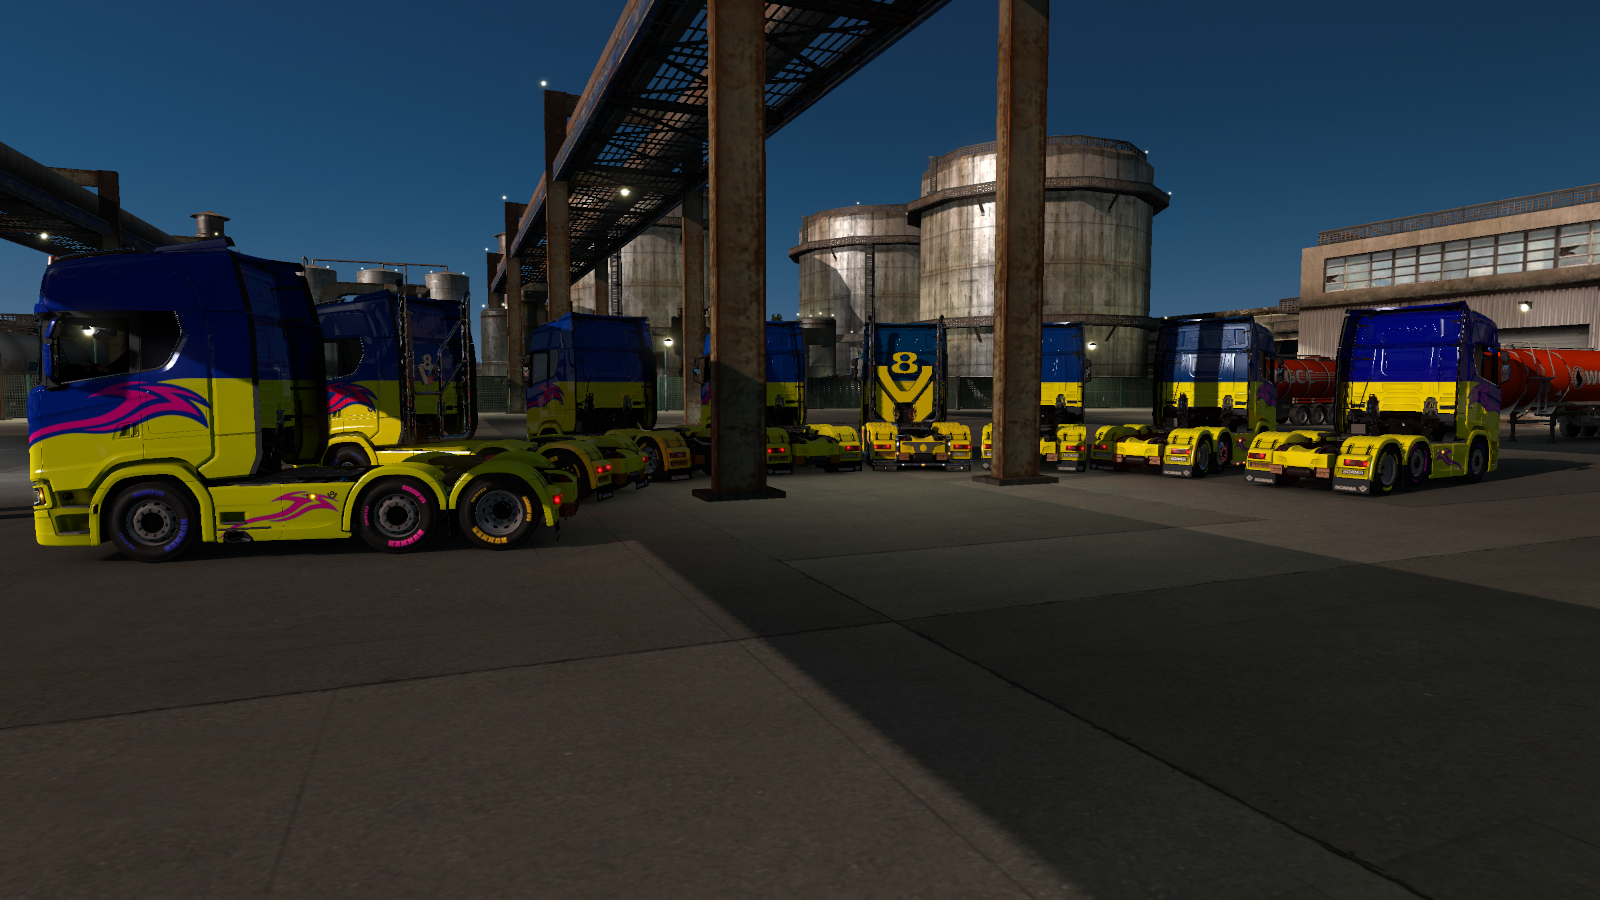 ets2_20190601_183752_00.png